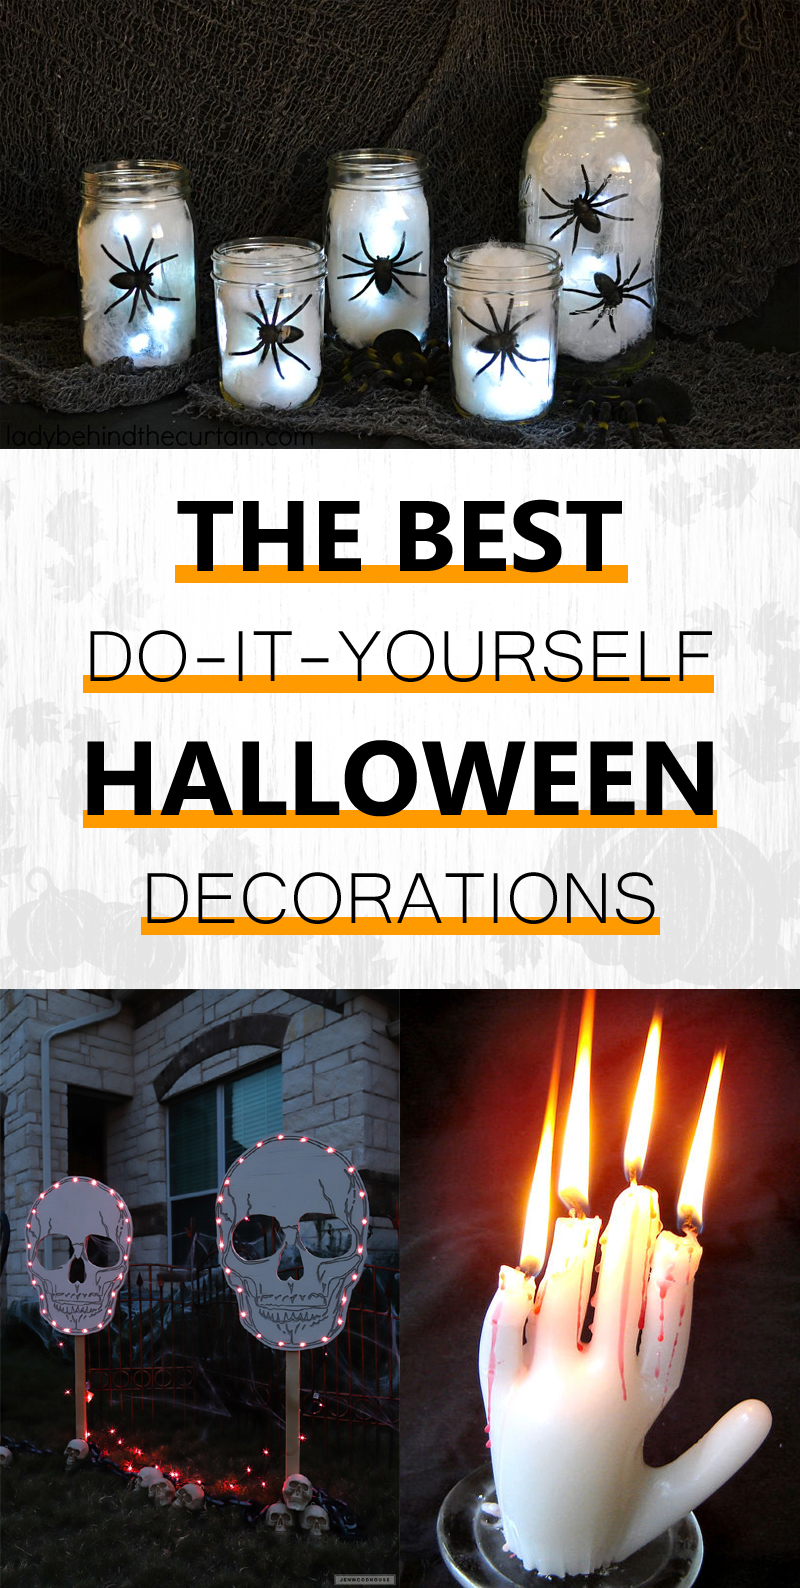 A collection of the best Halloween decorations that you can do yourself